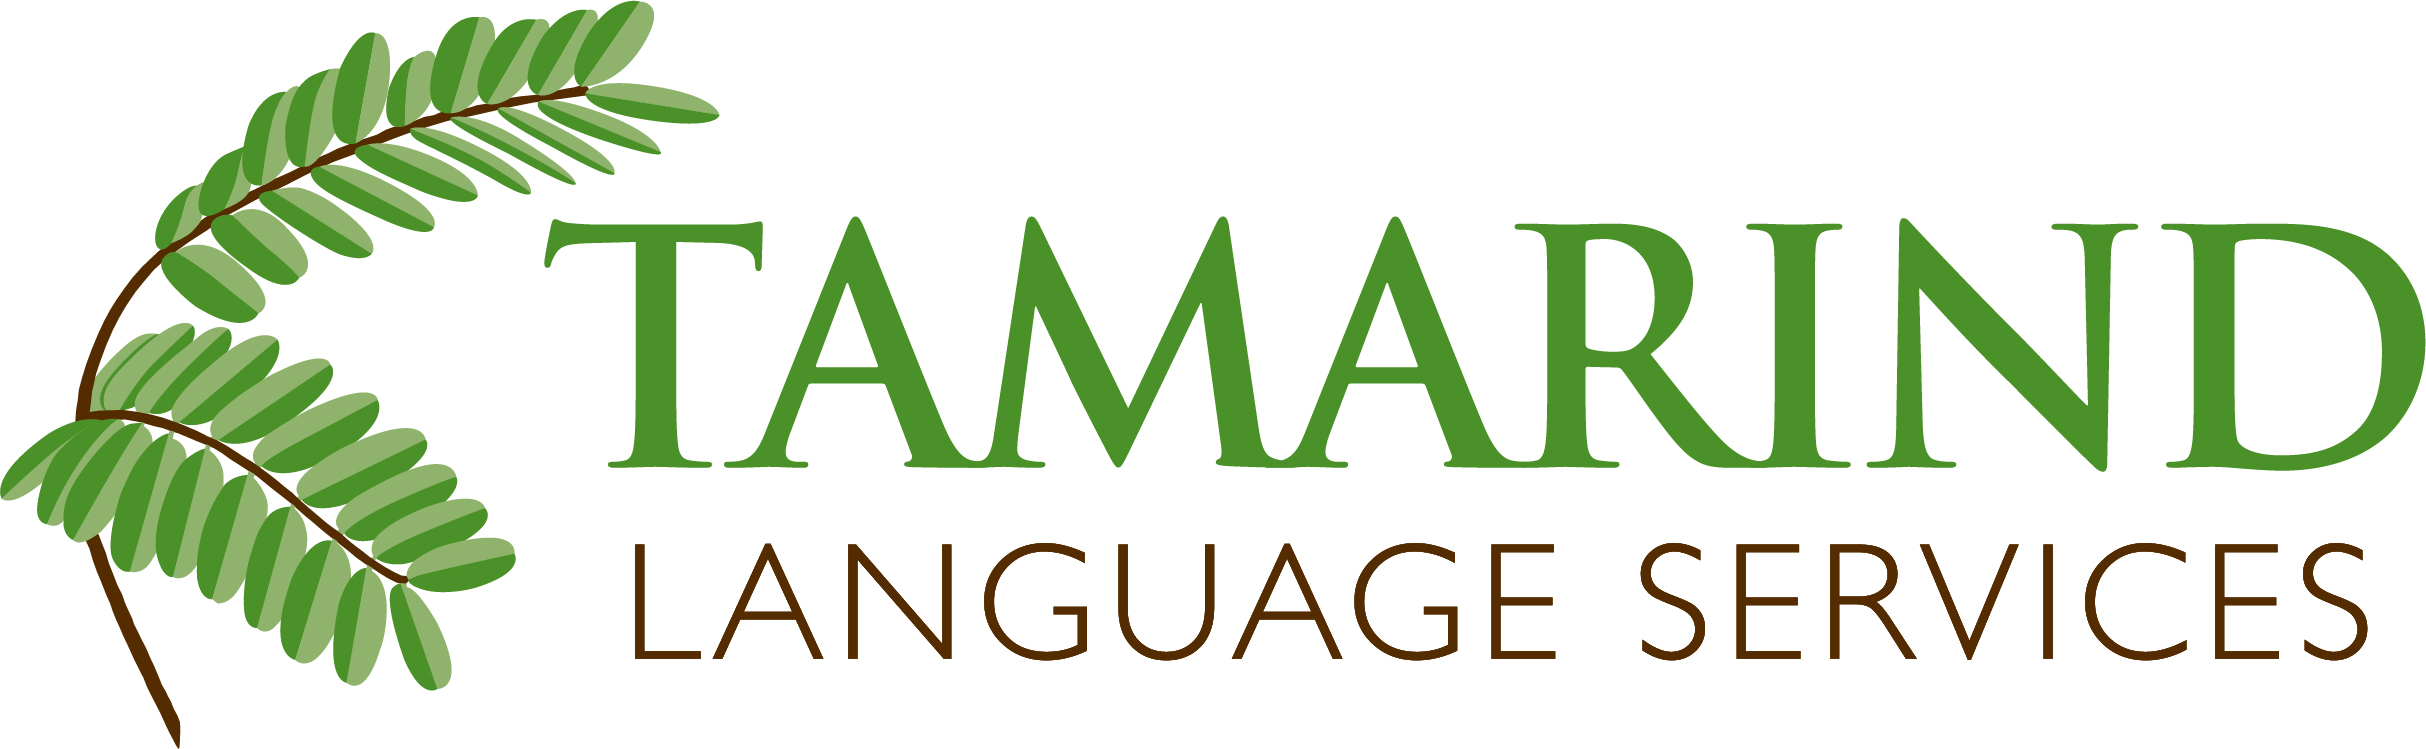 Tamarind Language Services Logo